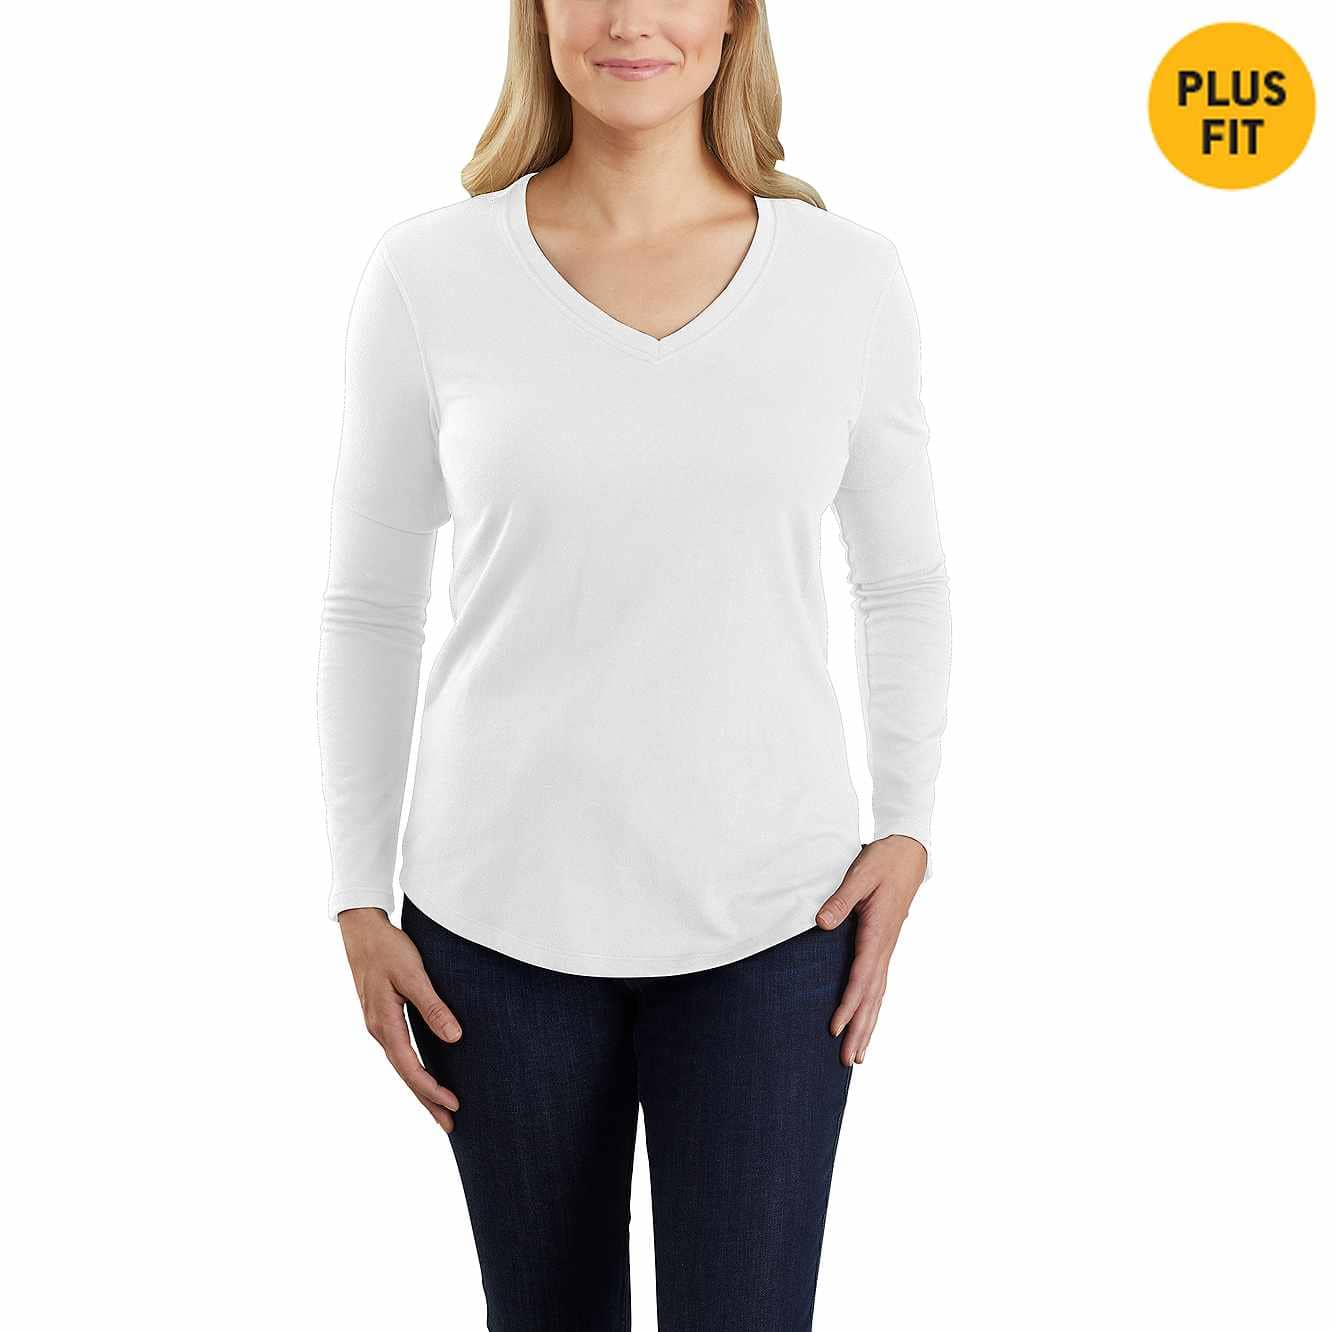 Picture of Carhartt® Relaxed Fit Midweight Long Sleeve V neck T-Shirt in White